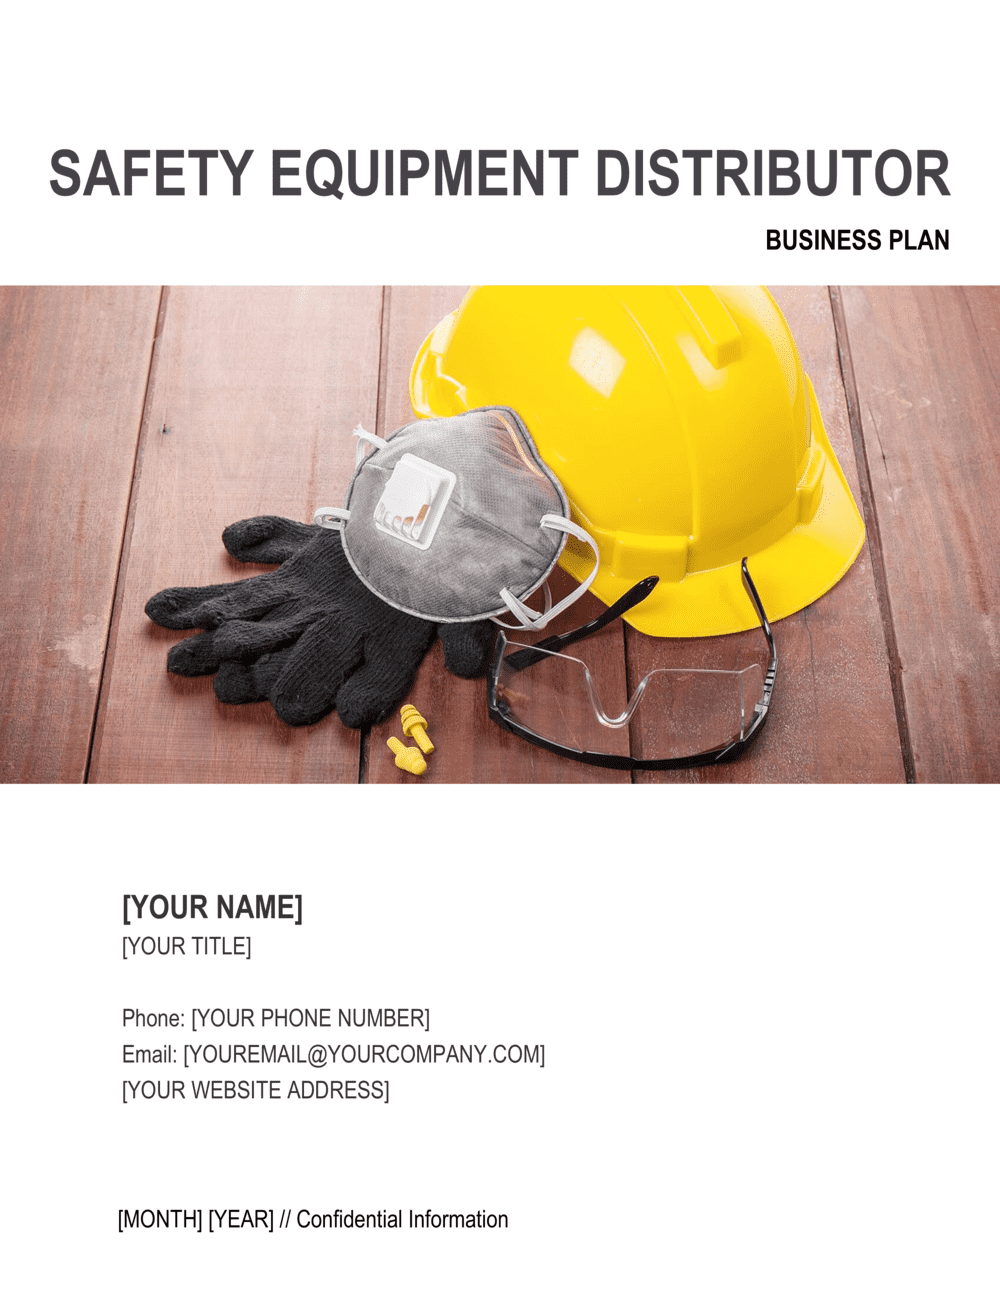 Business-in-a-Box's Safety Equipment Distributor Business Plan Template